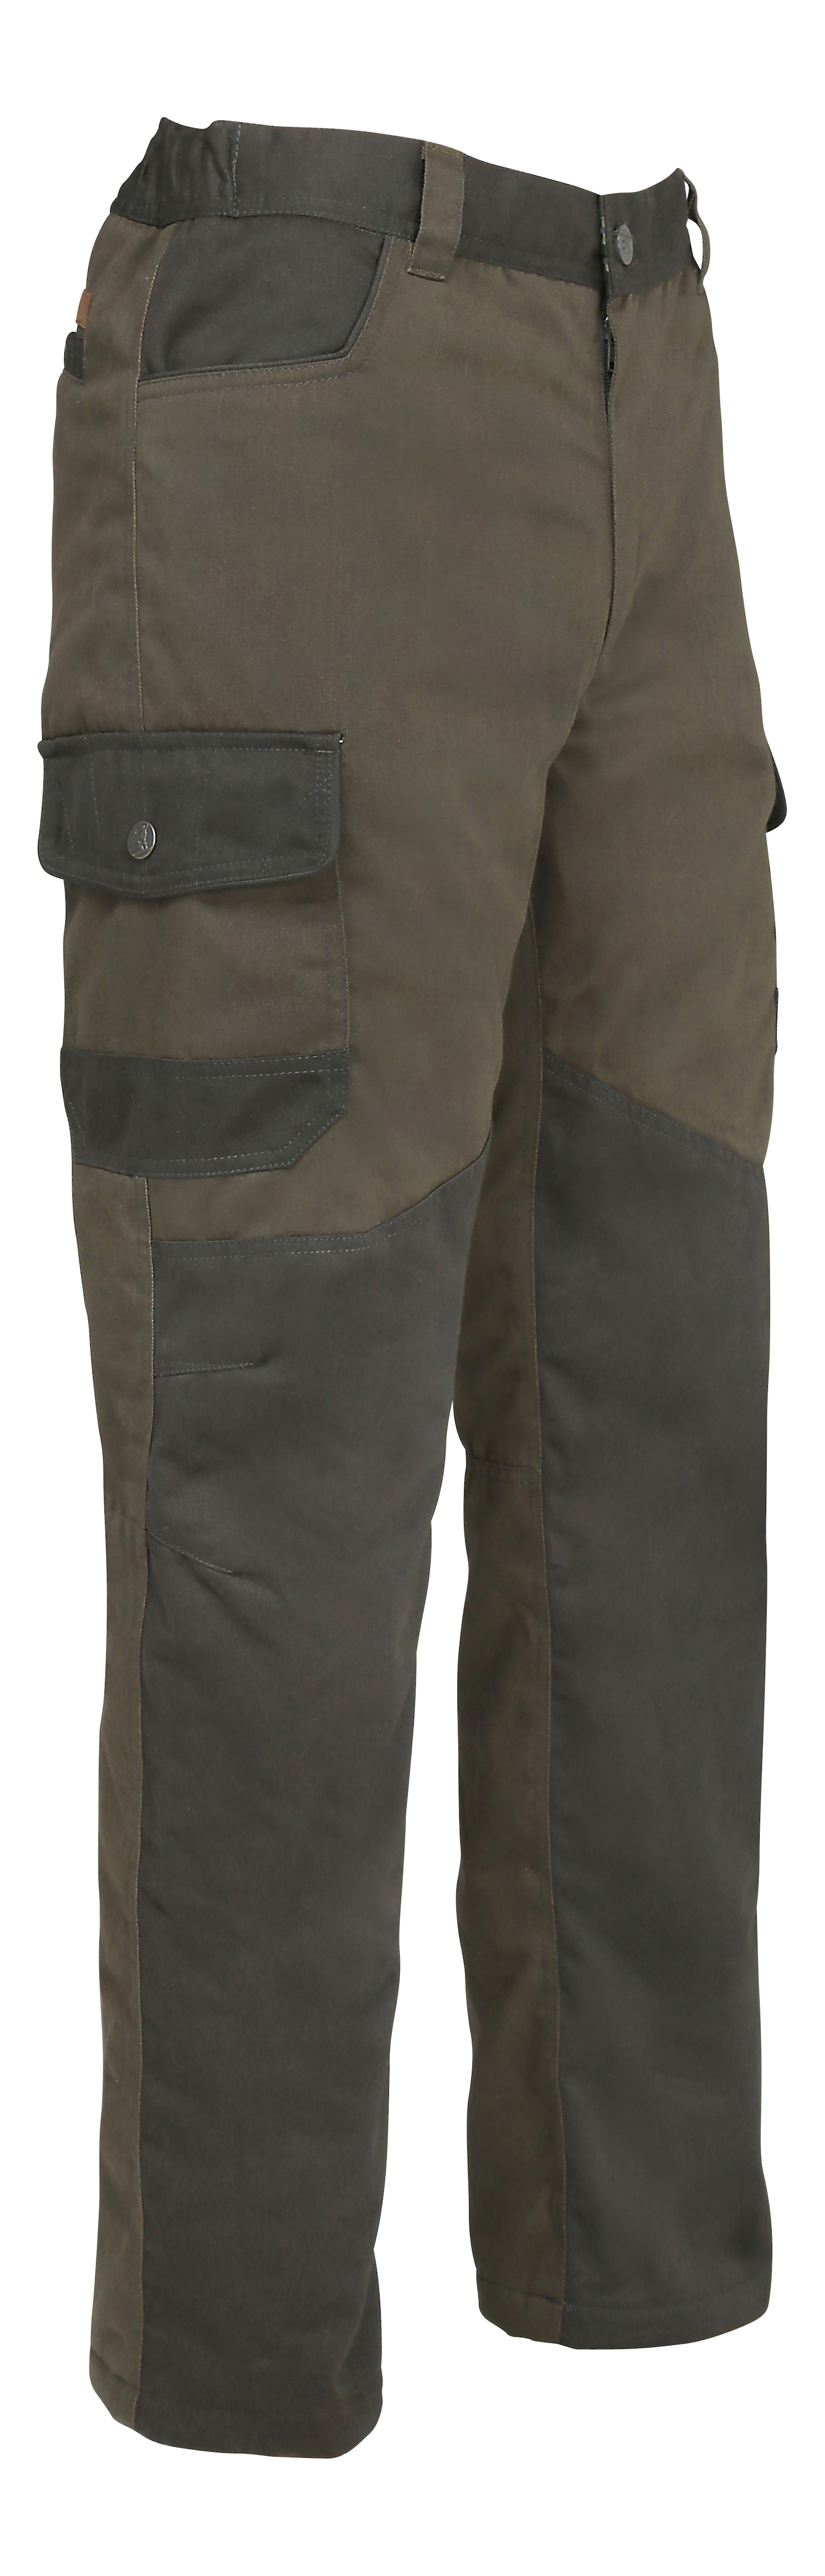 Percussion Tradition Warm Trouser Brown Khaki